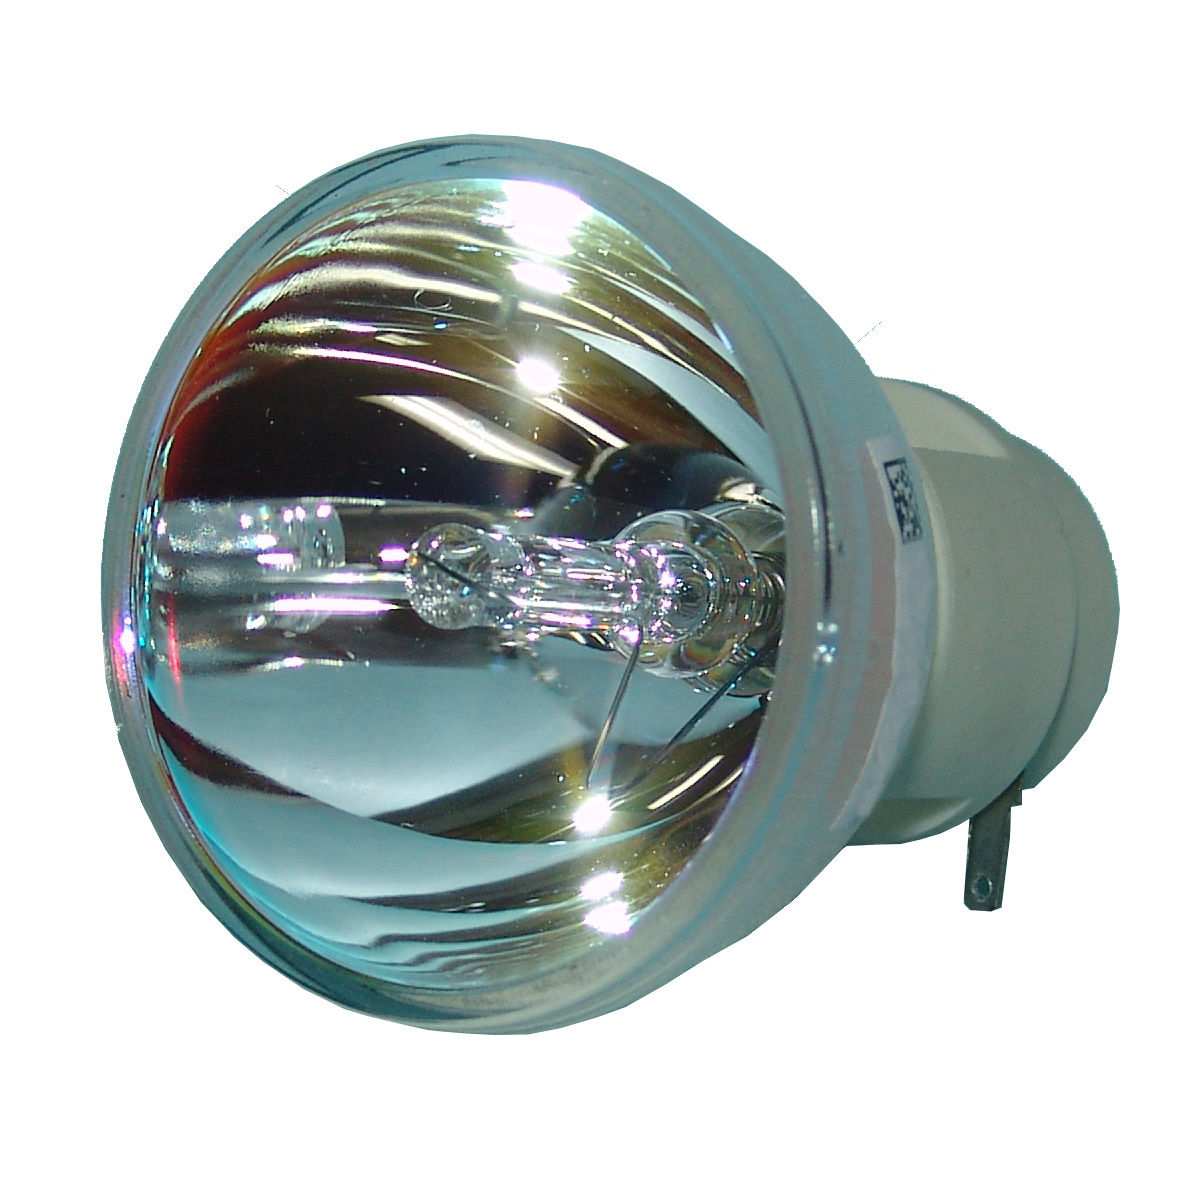 Фотография Osram Bare Lamp EC.JD700.001 For Acer  P1120  P1220  P1320H  P1320W  X1320WH   Projector DLP LCD Bulb